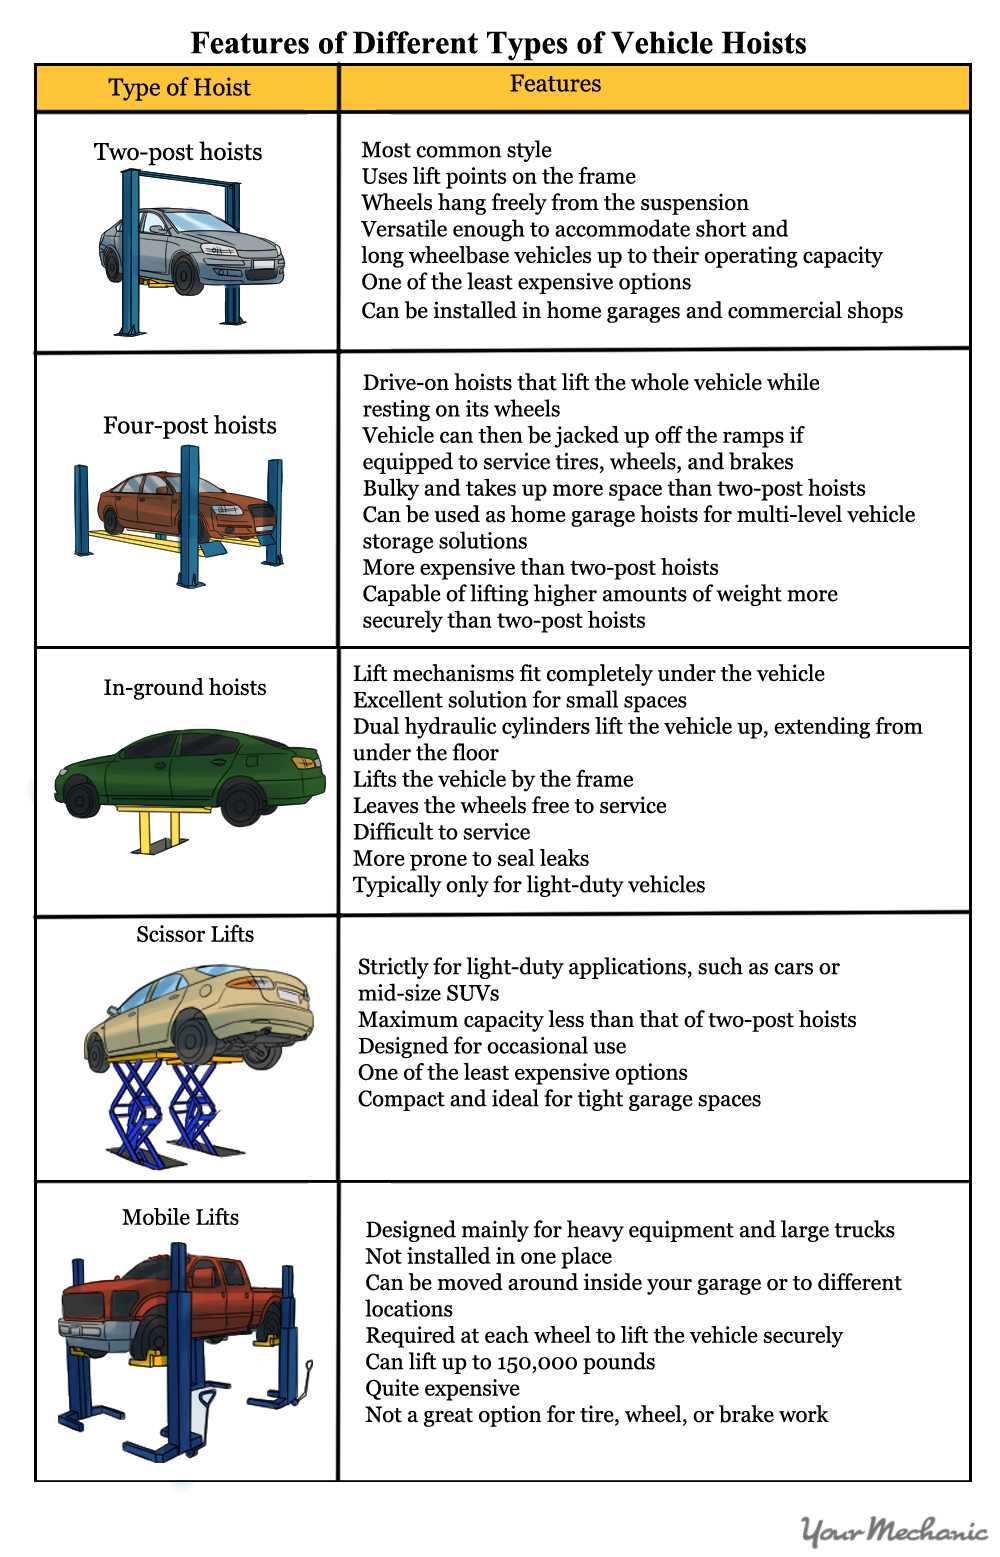 car hoist comparison chart